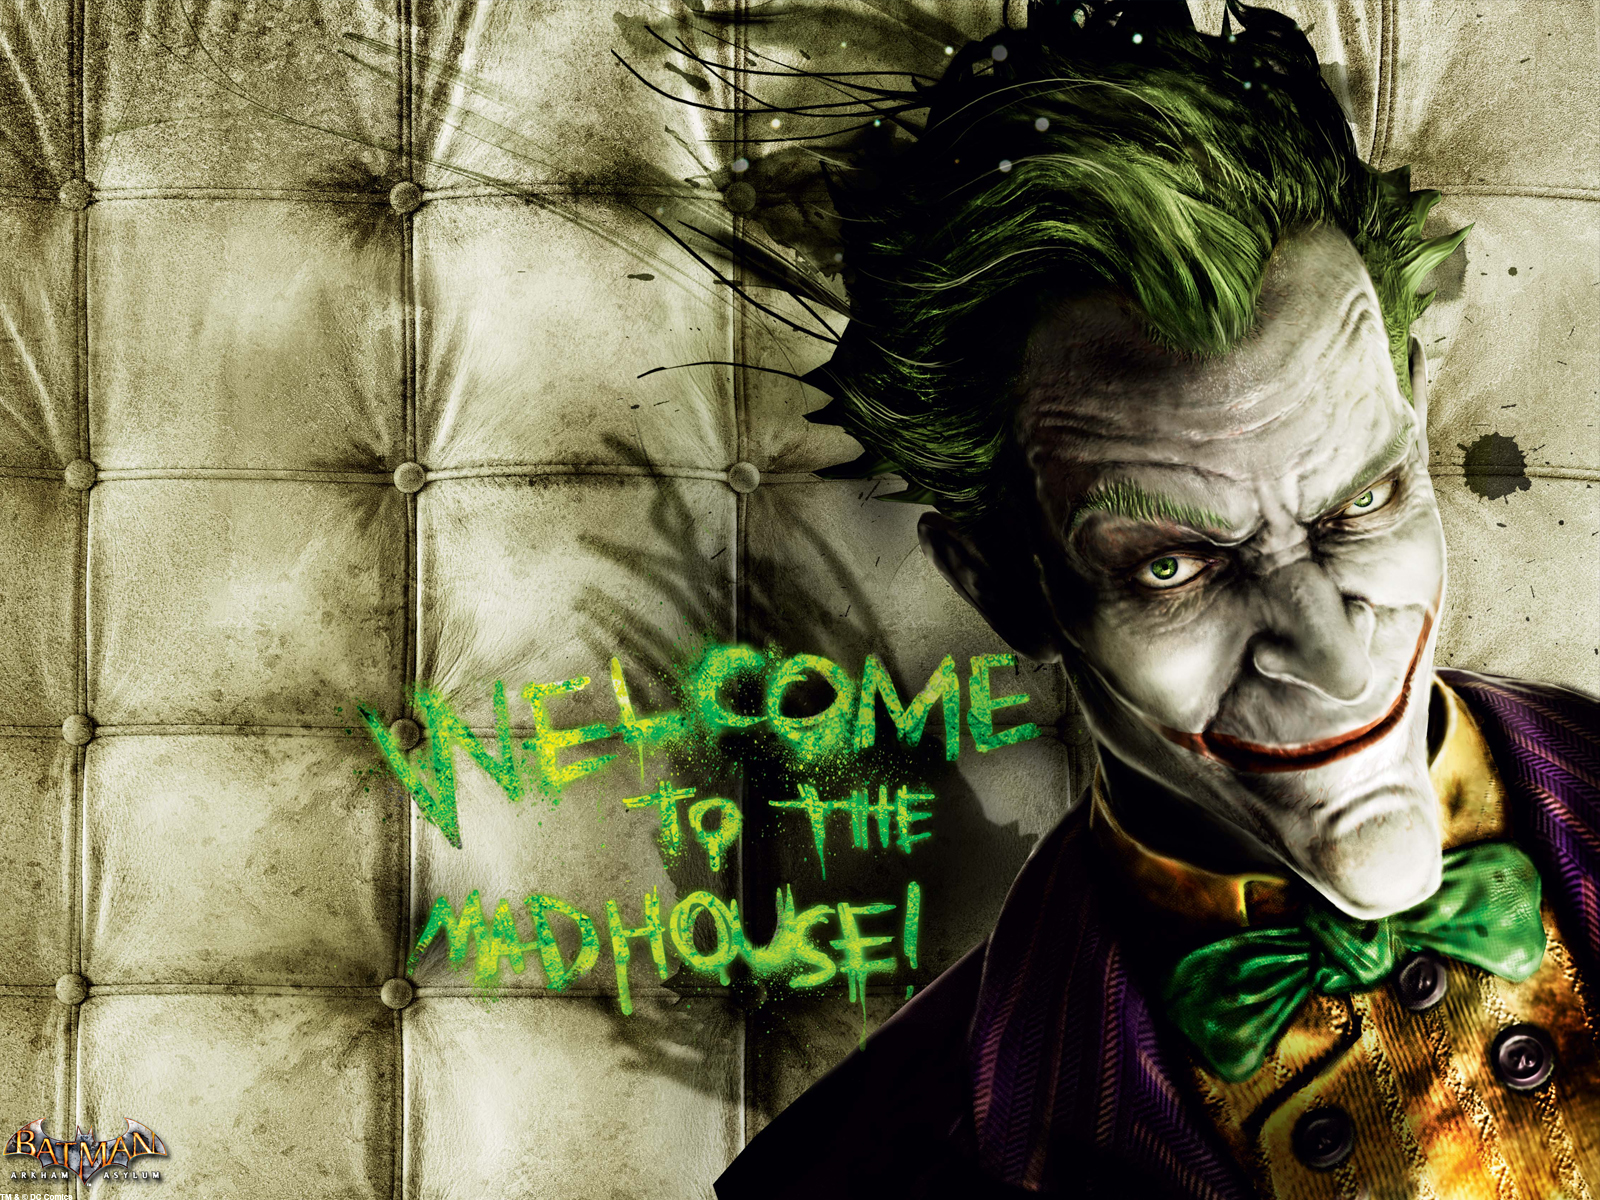 Batman: Arkham Asylum Joker wallpaper. Click for big pic